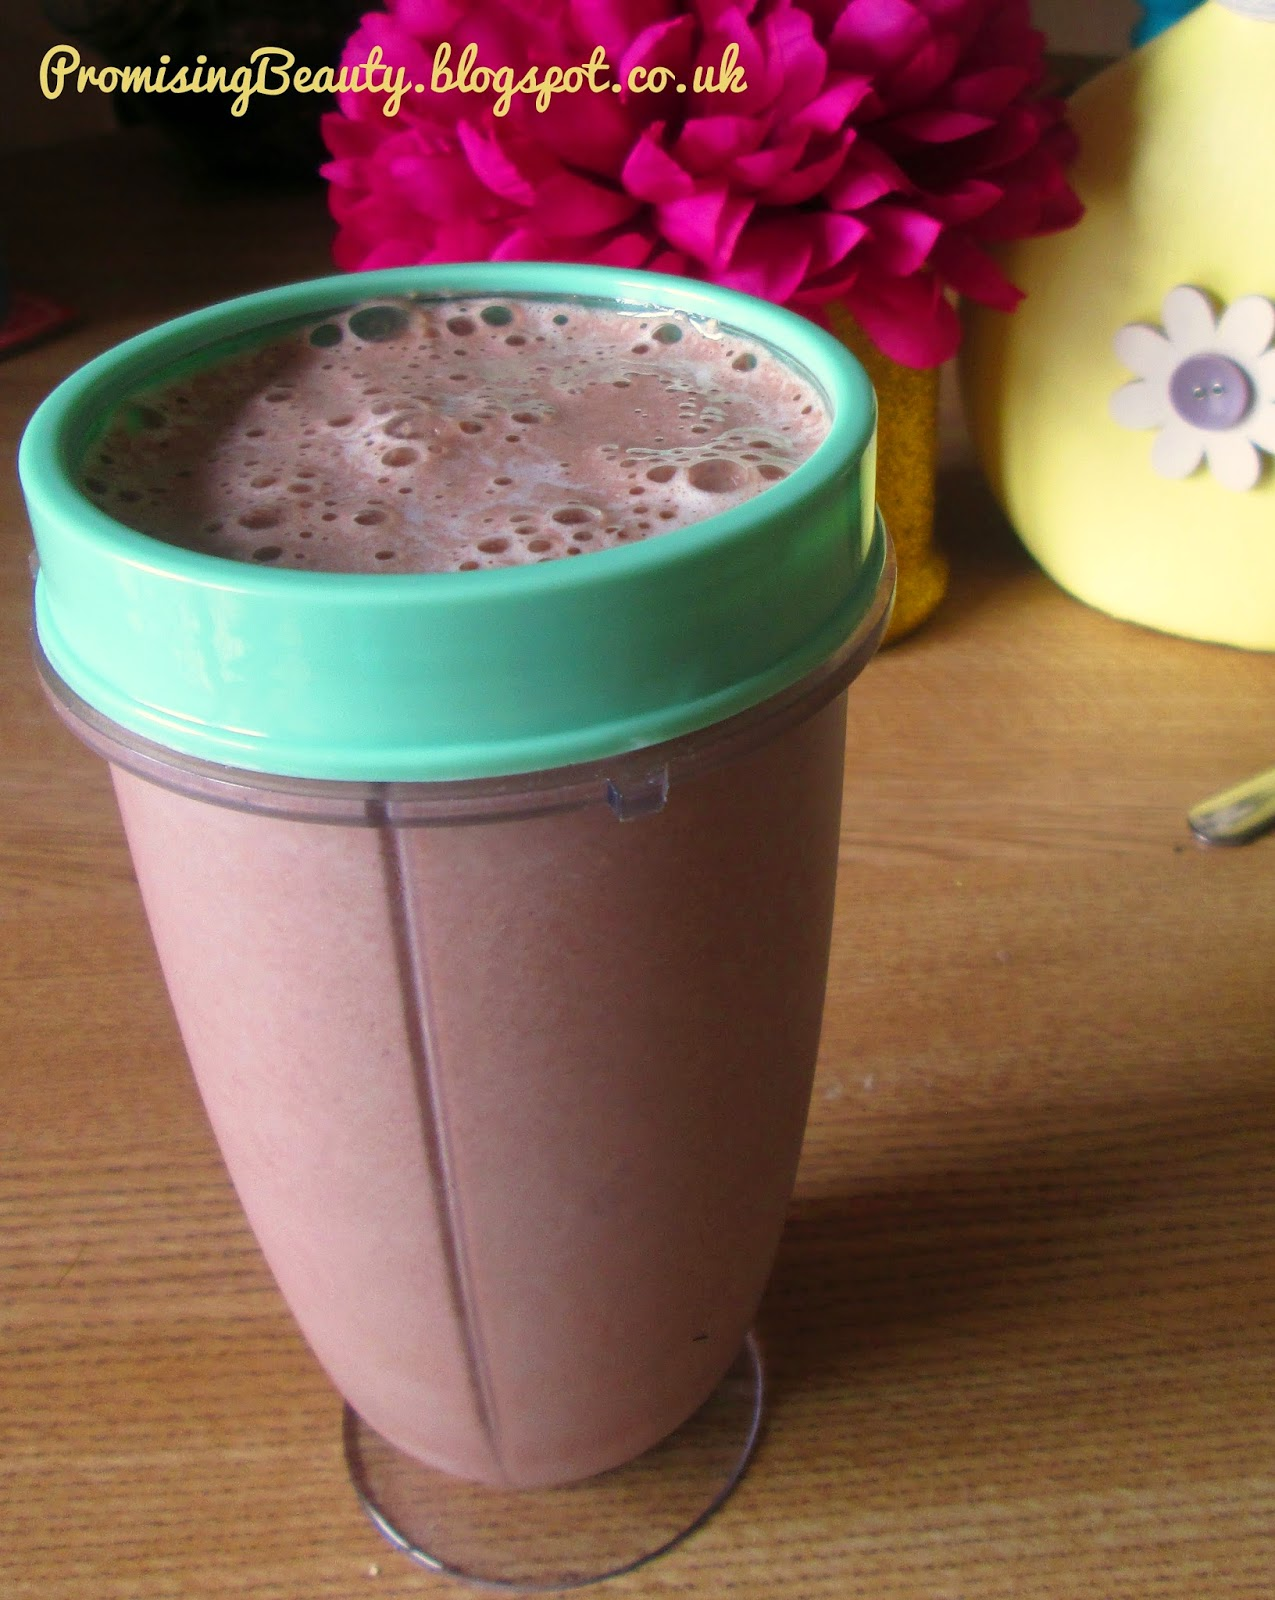 Healthy breakfast milkshake smoothie. Filling, cheap and clean. Energy ingredients made in a bullet blender. Chocolate and banana. Purple flower and pinterest crafts in the background.